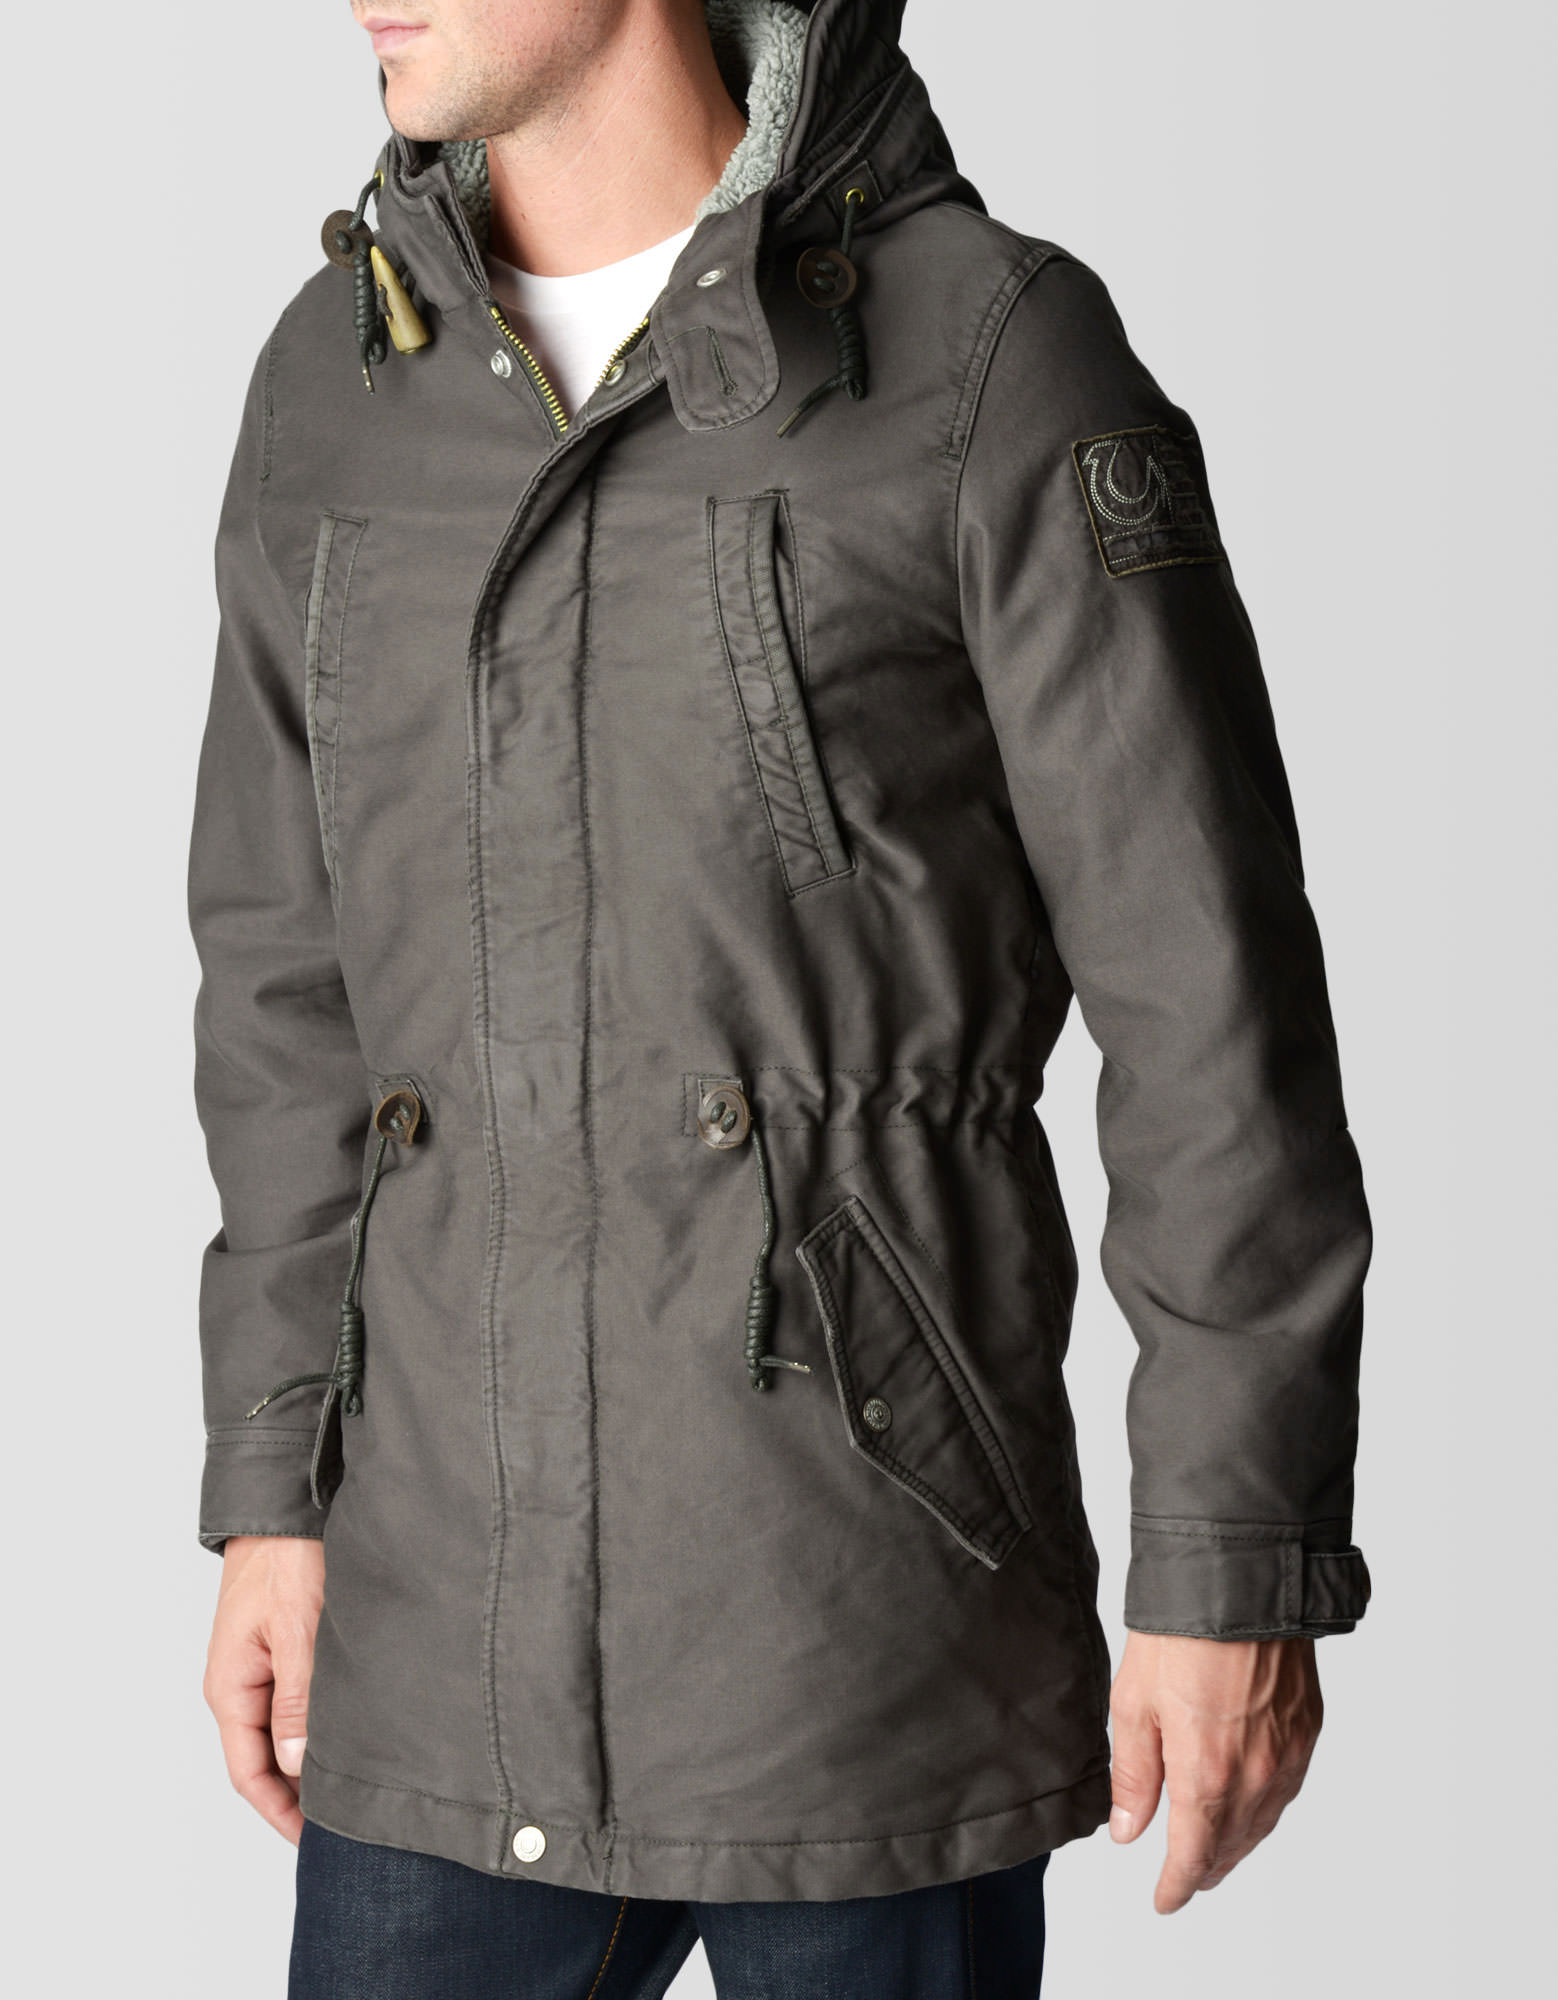 Free Shipping at thritingetqay.cf with $50 purchase. Shop for rugged men's outerwear that will keep you warm, dry and comfortable, in all types of weather, in every season. Made for the shared joy of the outdoors.